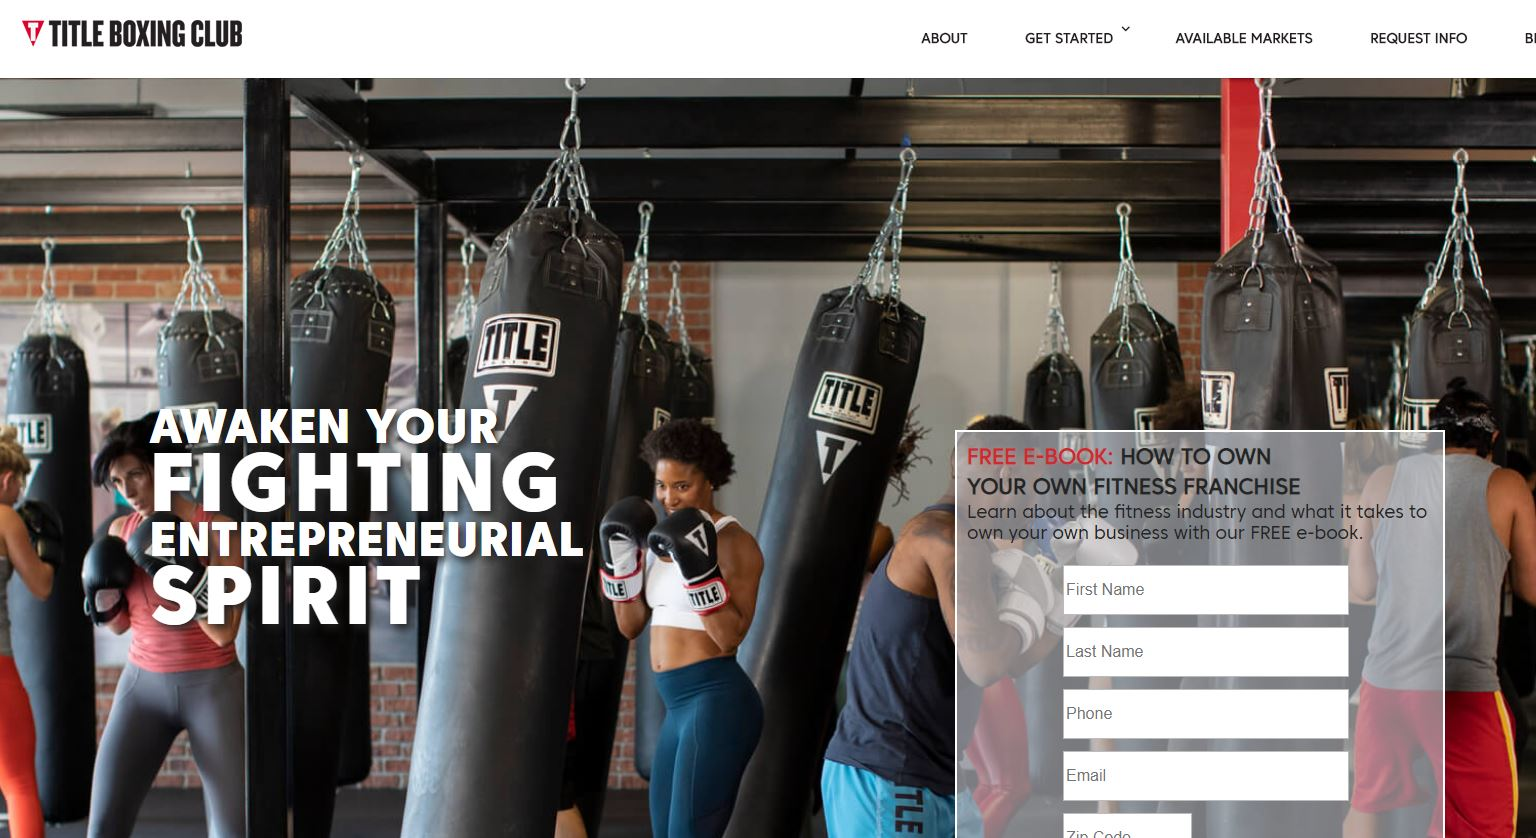 title boxing club franchisor website